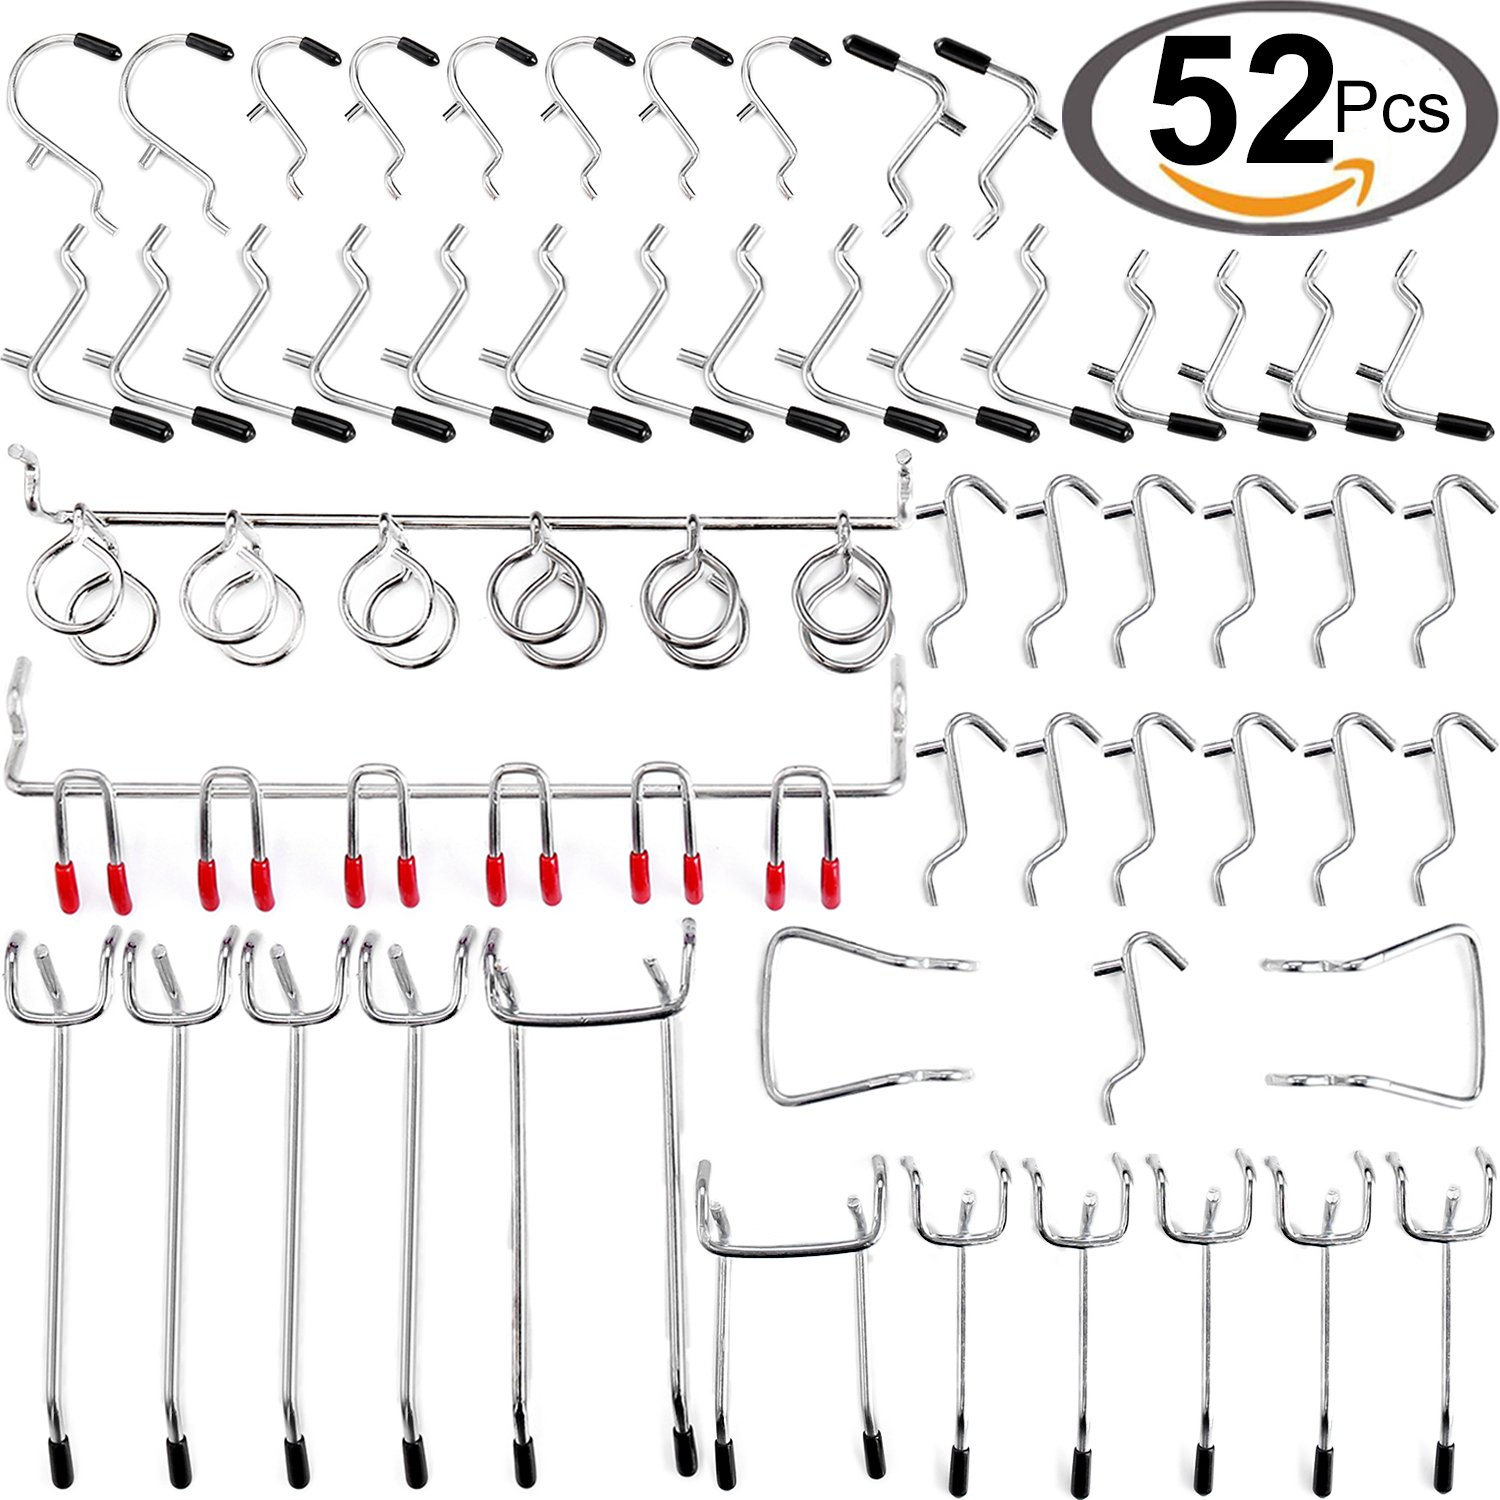 Wangday Pegboard Hooks Accessories, 52-Piece Peg Board Hook Attachments Set